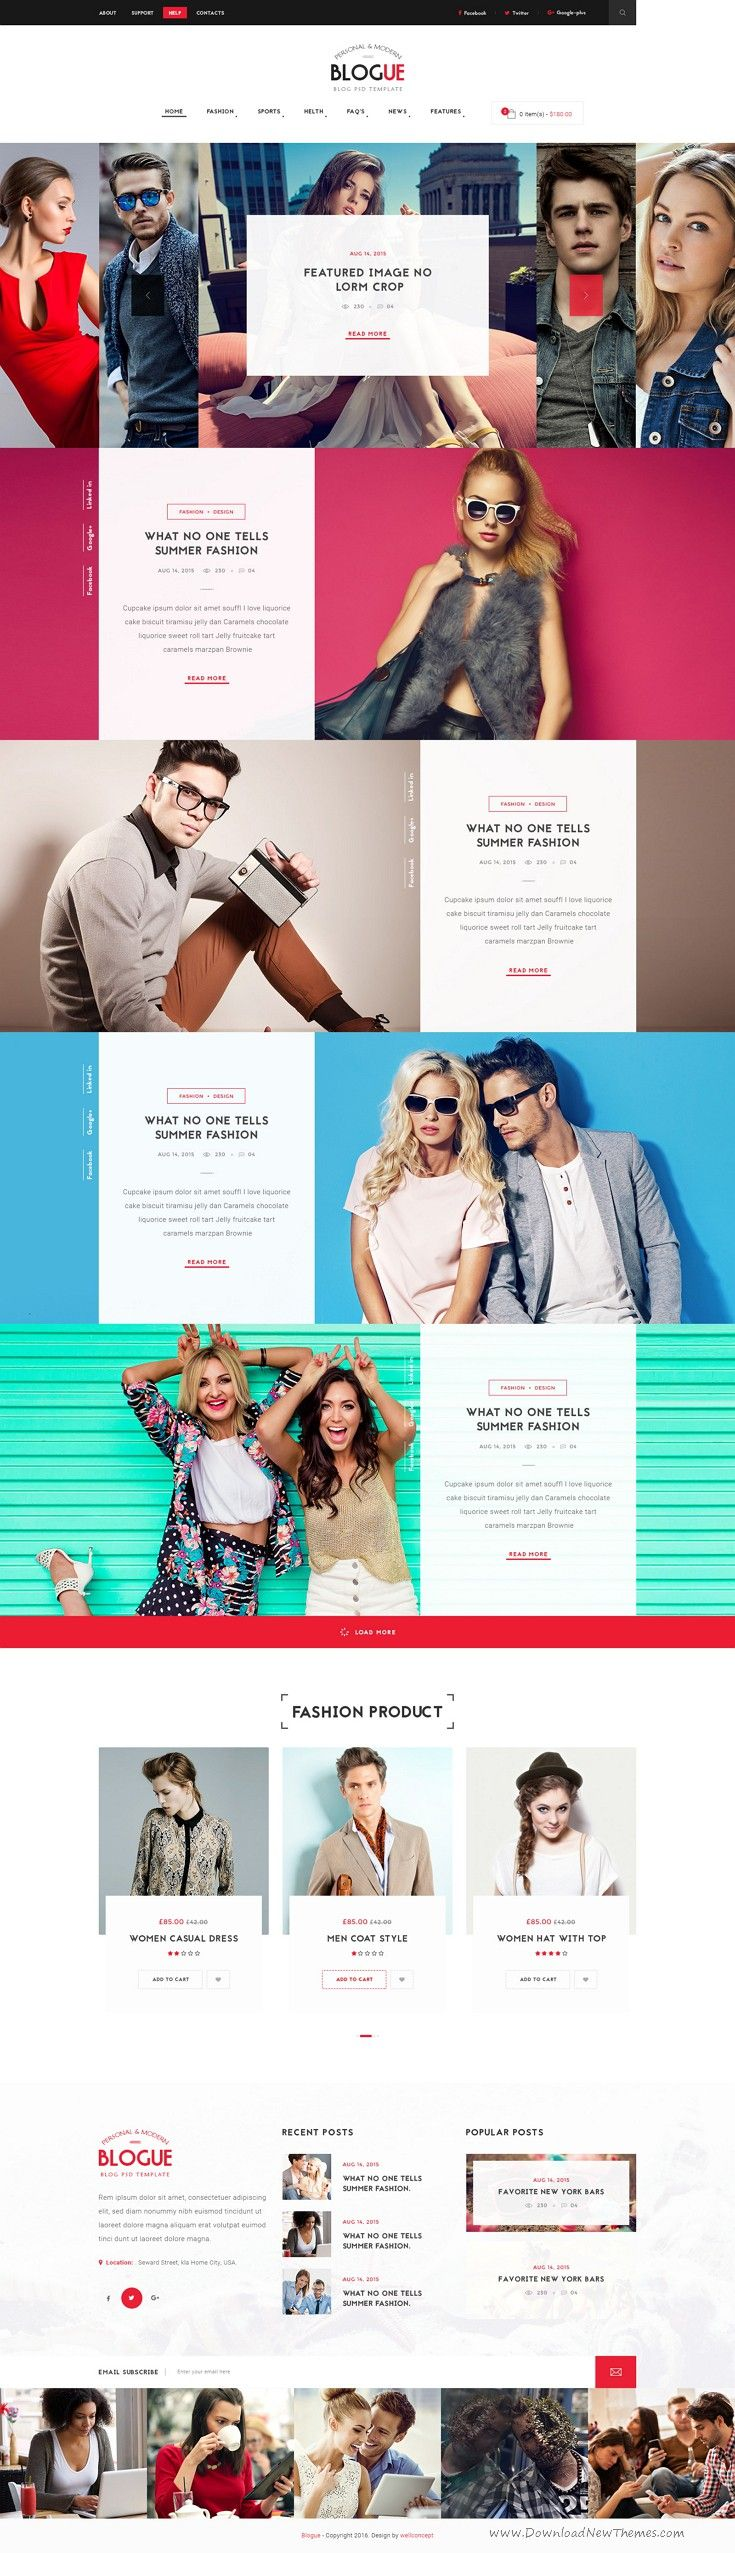 Blogue is a modern personal blog template with 5 different homepage layouts. #blogging #psdtheme Download Now!